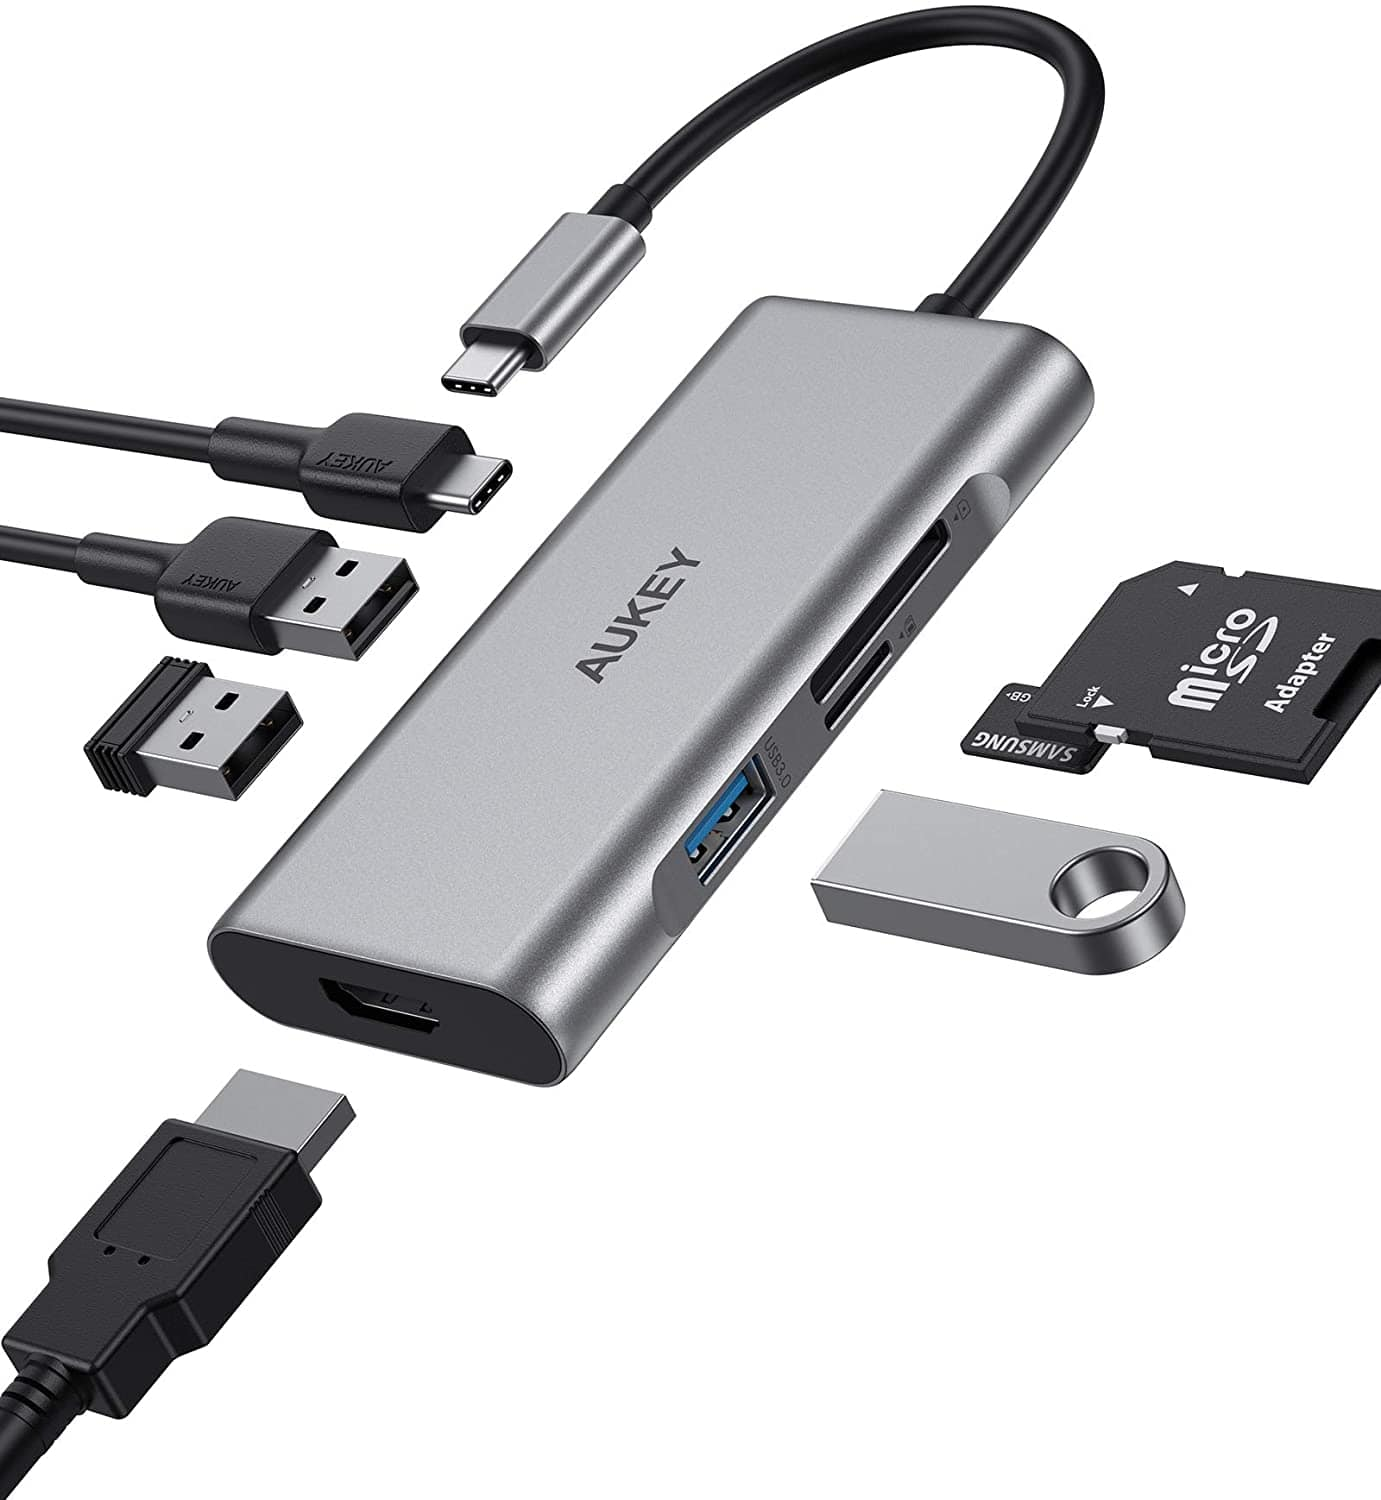 AUKEY USB C Hub 7-in-1, Type C Adapter with 100W Power Delivery, HDMI & More $18 @ Amazon